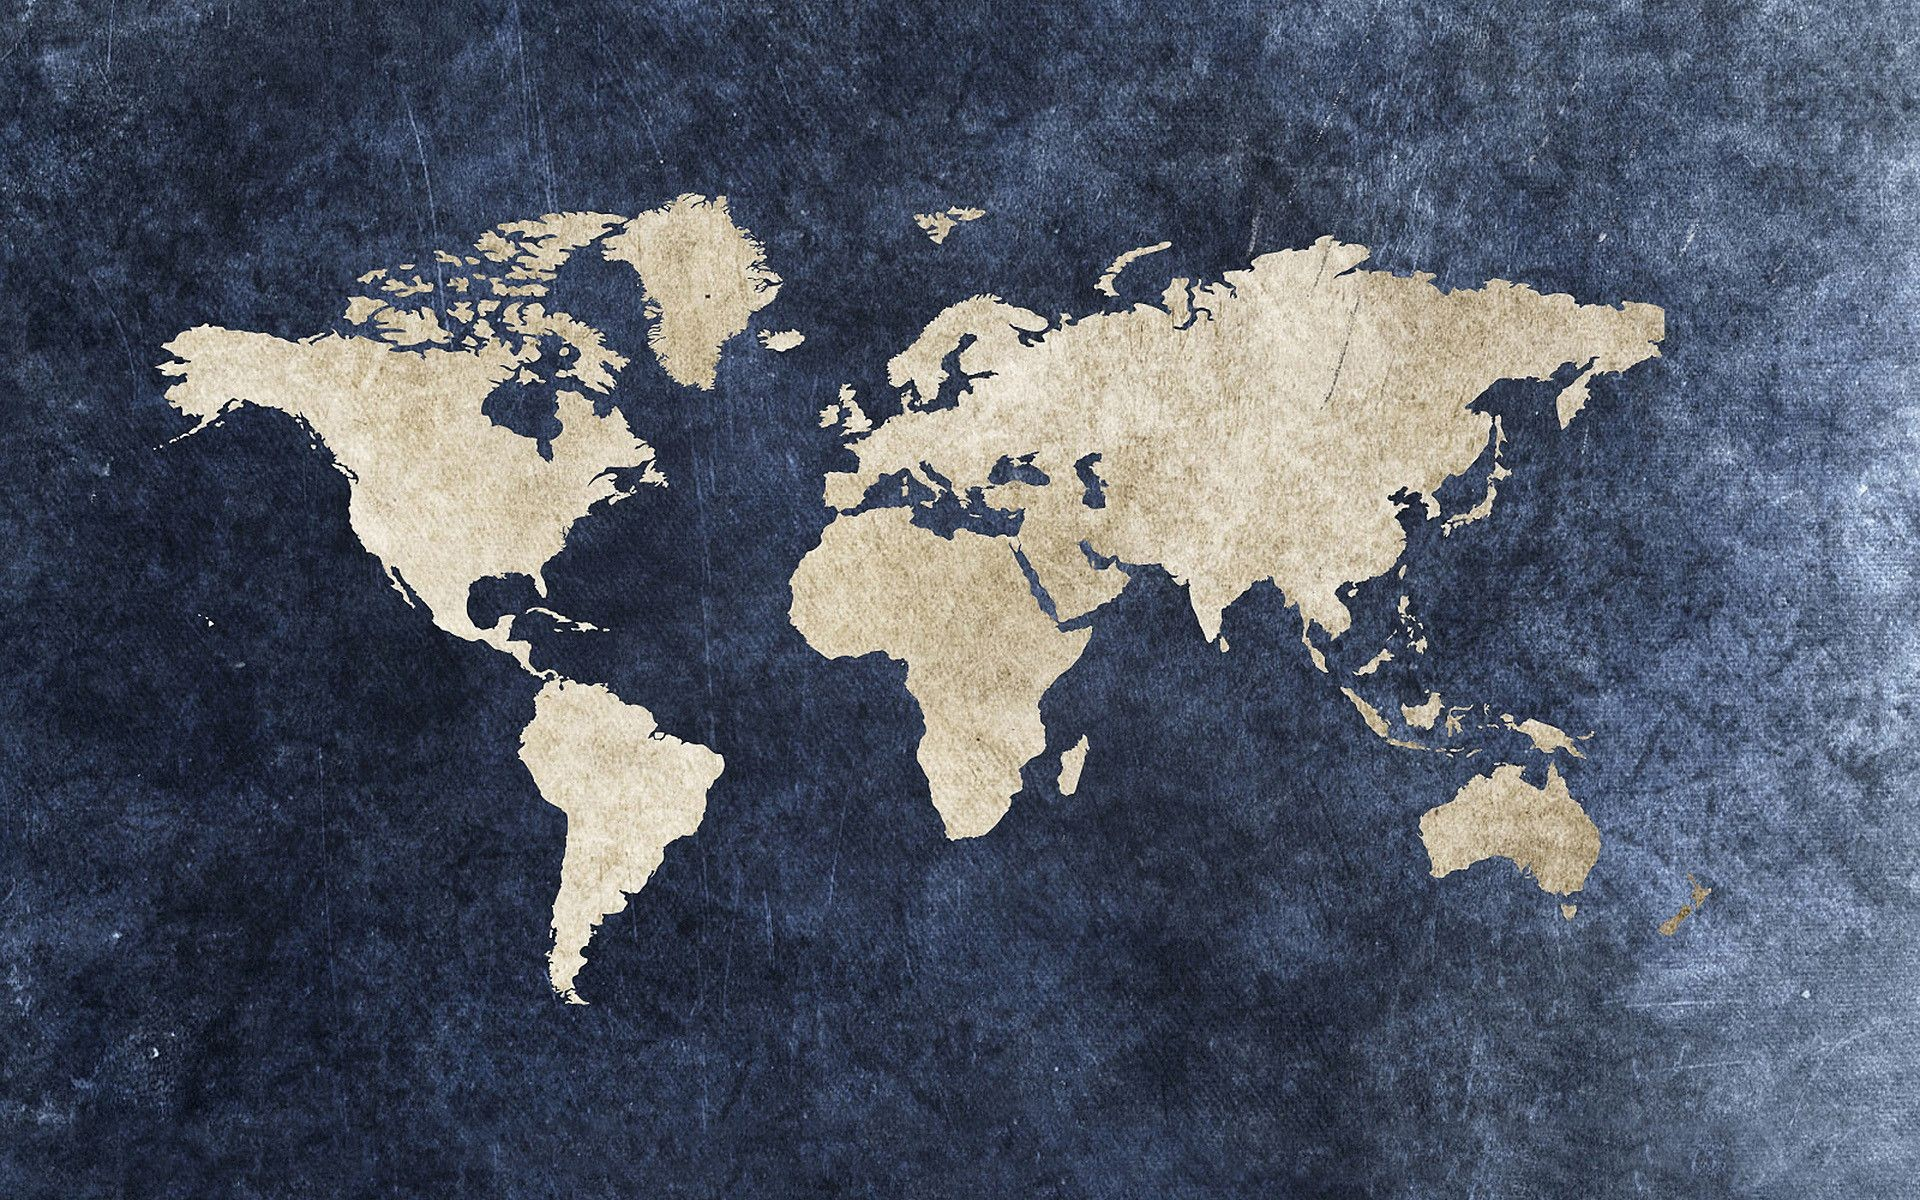 World map wallpaper download free amazing backgrounds for 1920x1200 world map wallpaper 1920x1200 for meizu download full gumiabroncs Choice Image